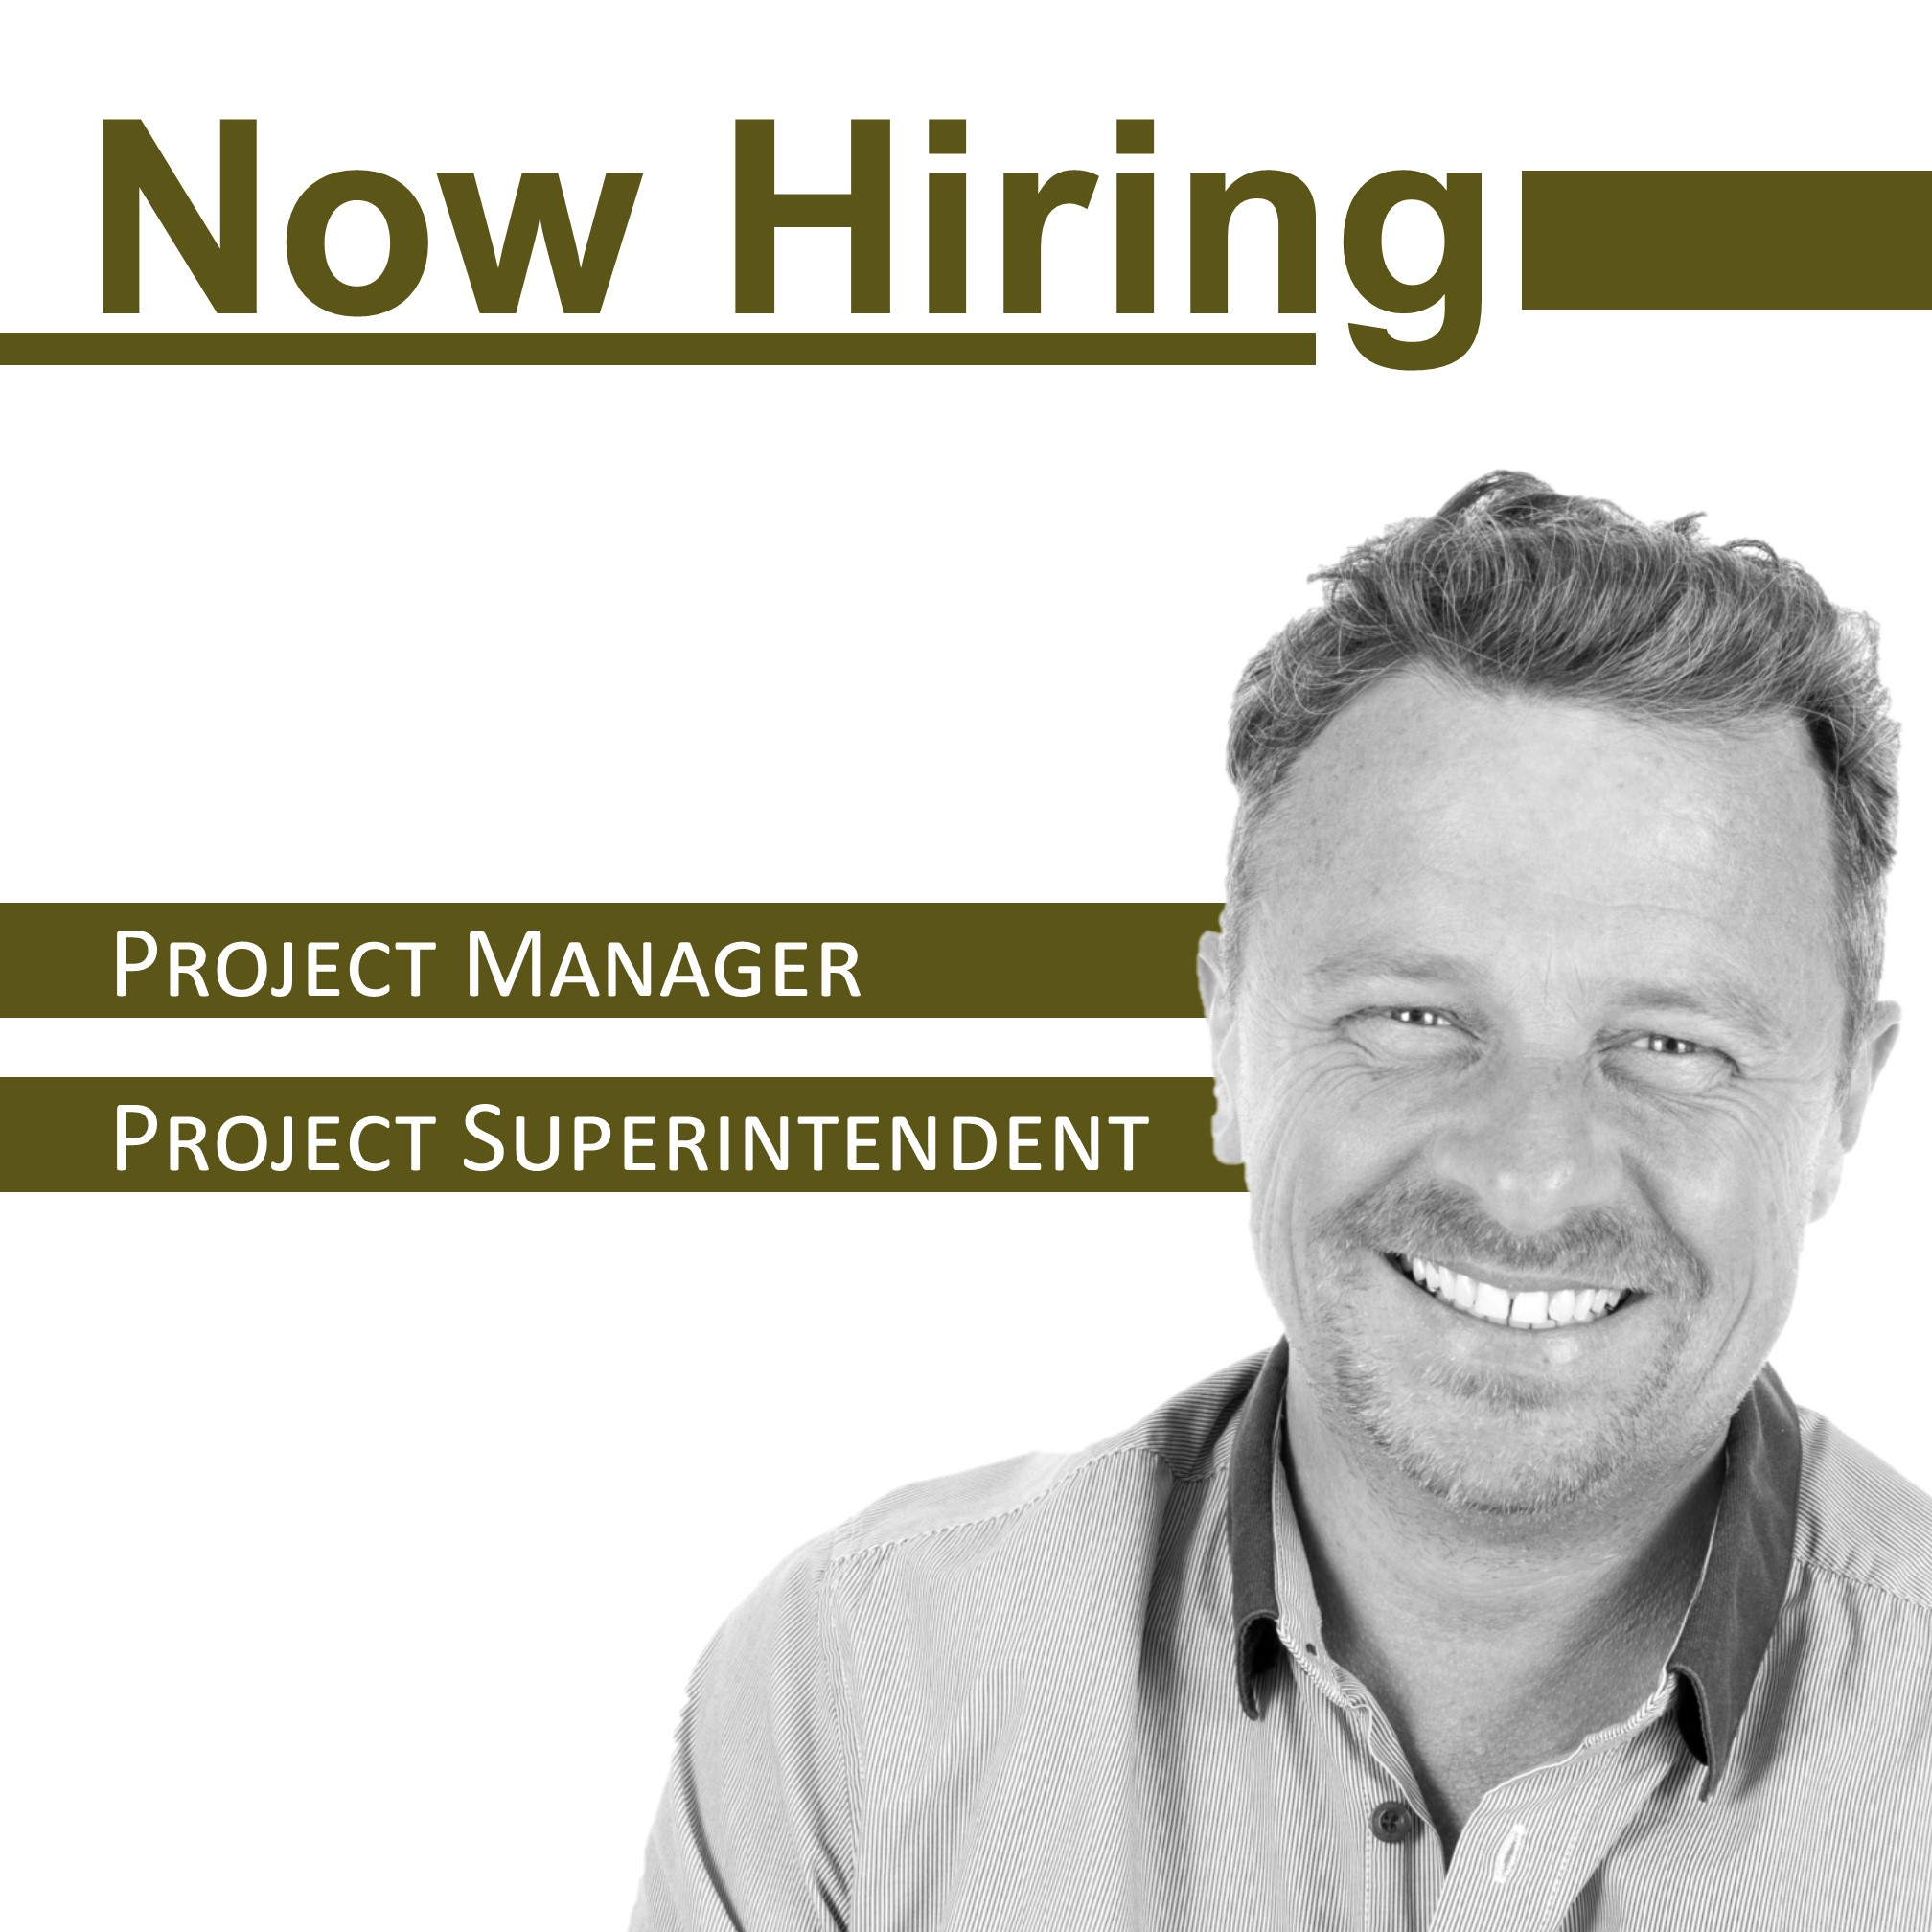 Westwood Contractors is now hiring construction Project Manager and Project Superintendent.